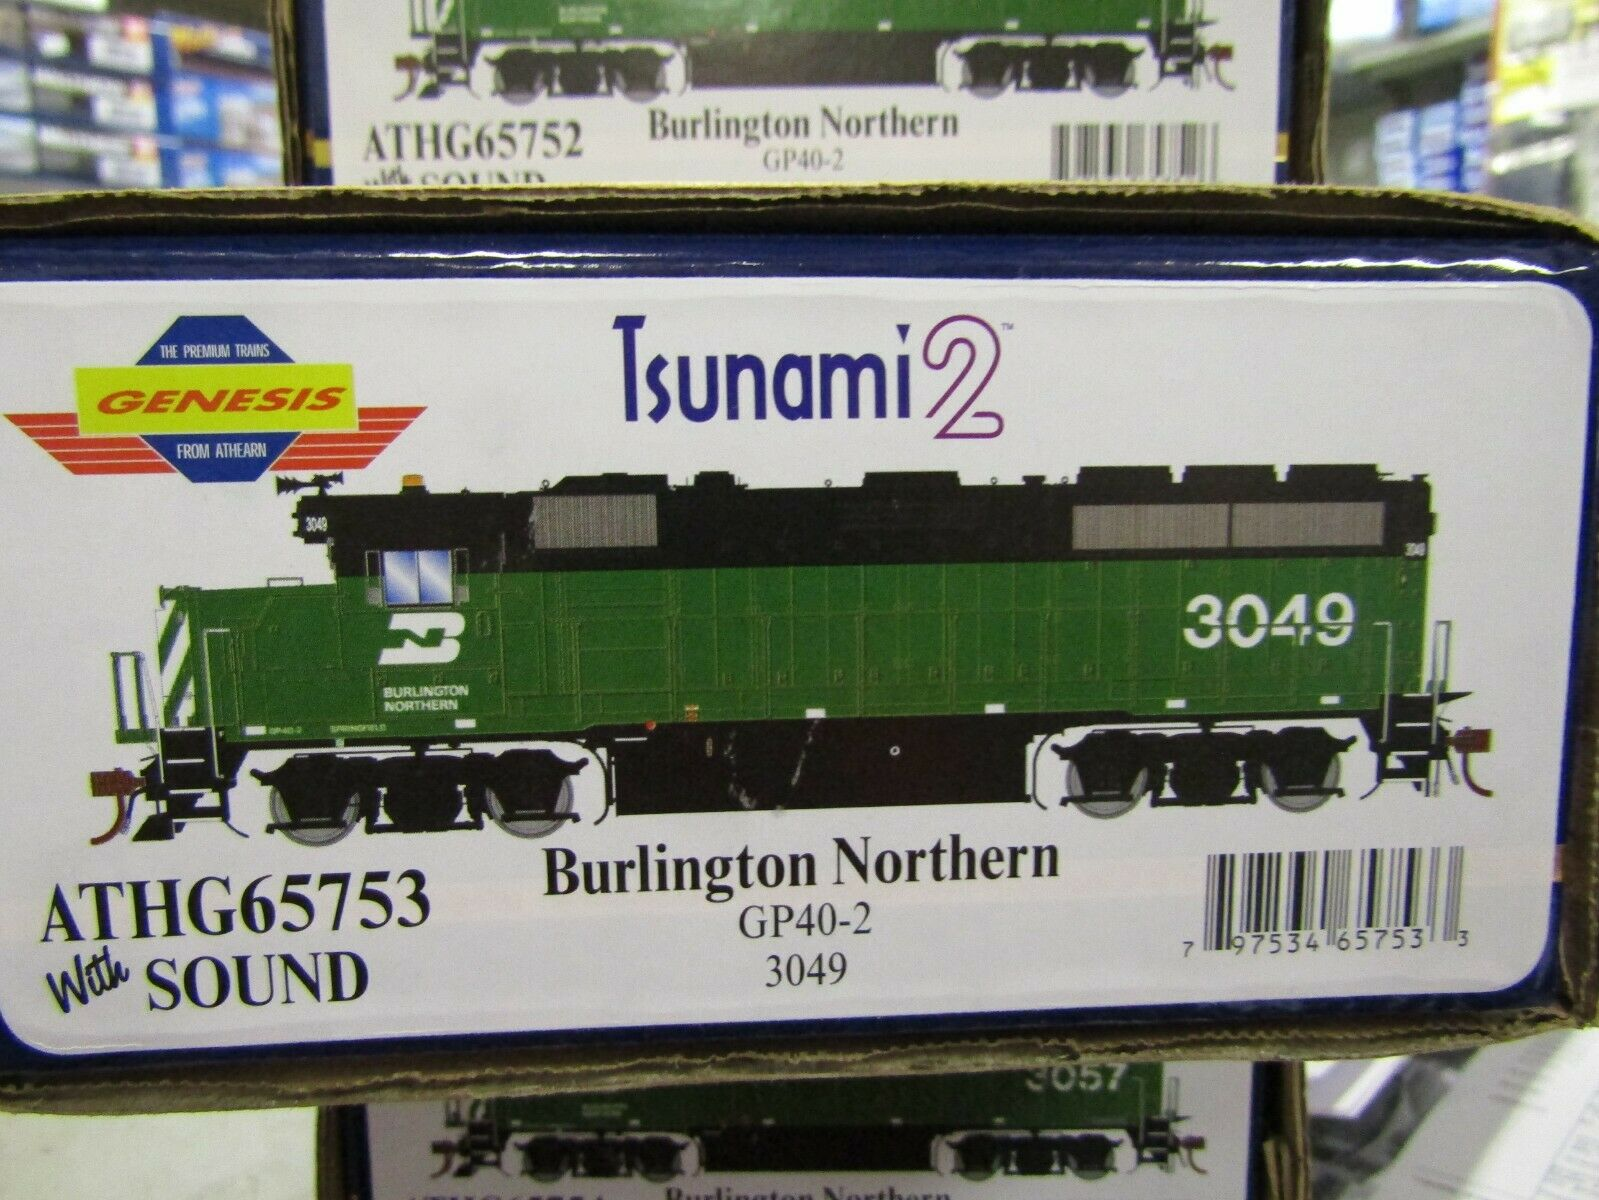 Athearn G65753 Burlington Northern GP40-2 Ho tsunami 2 DCC & SND, DC RD  3049